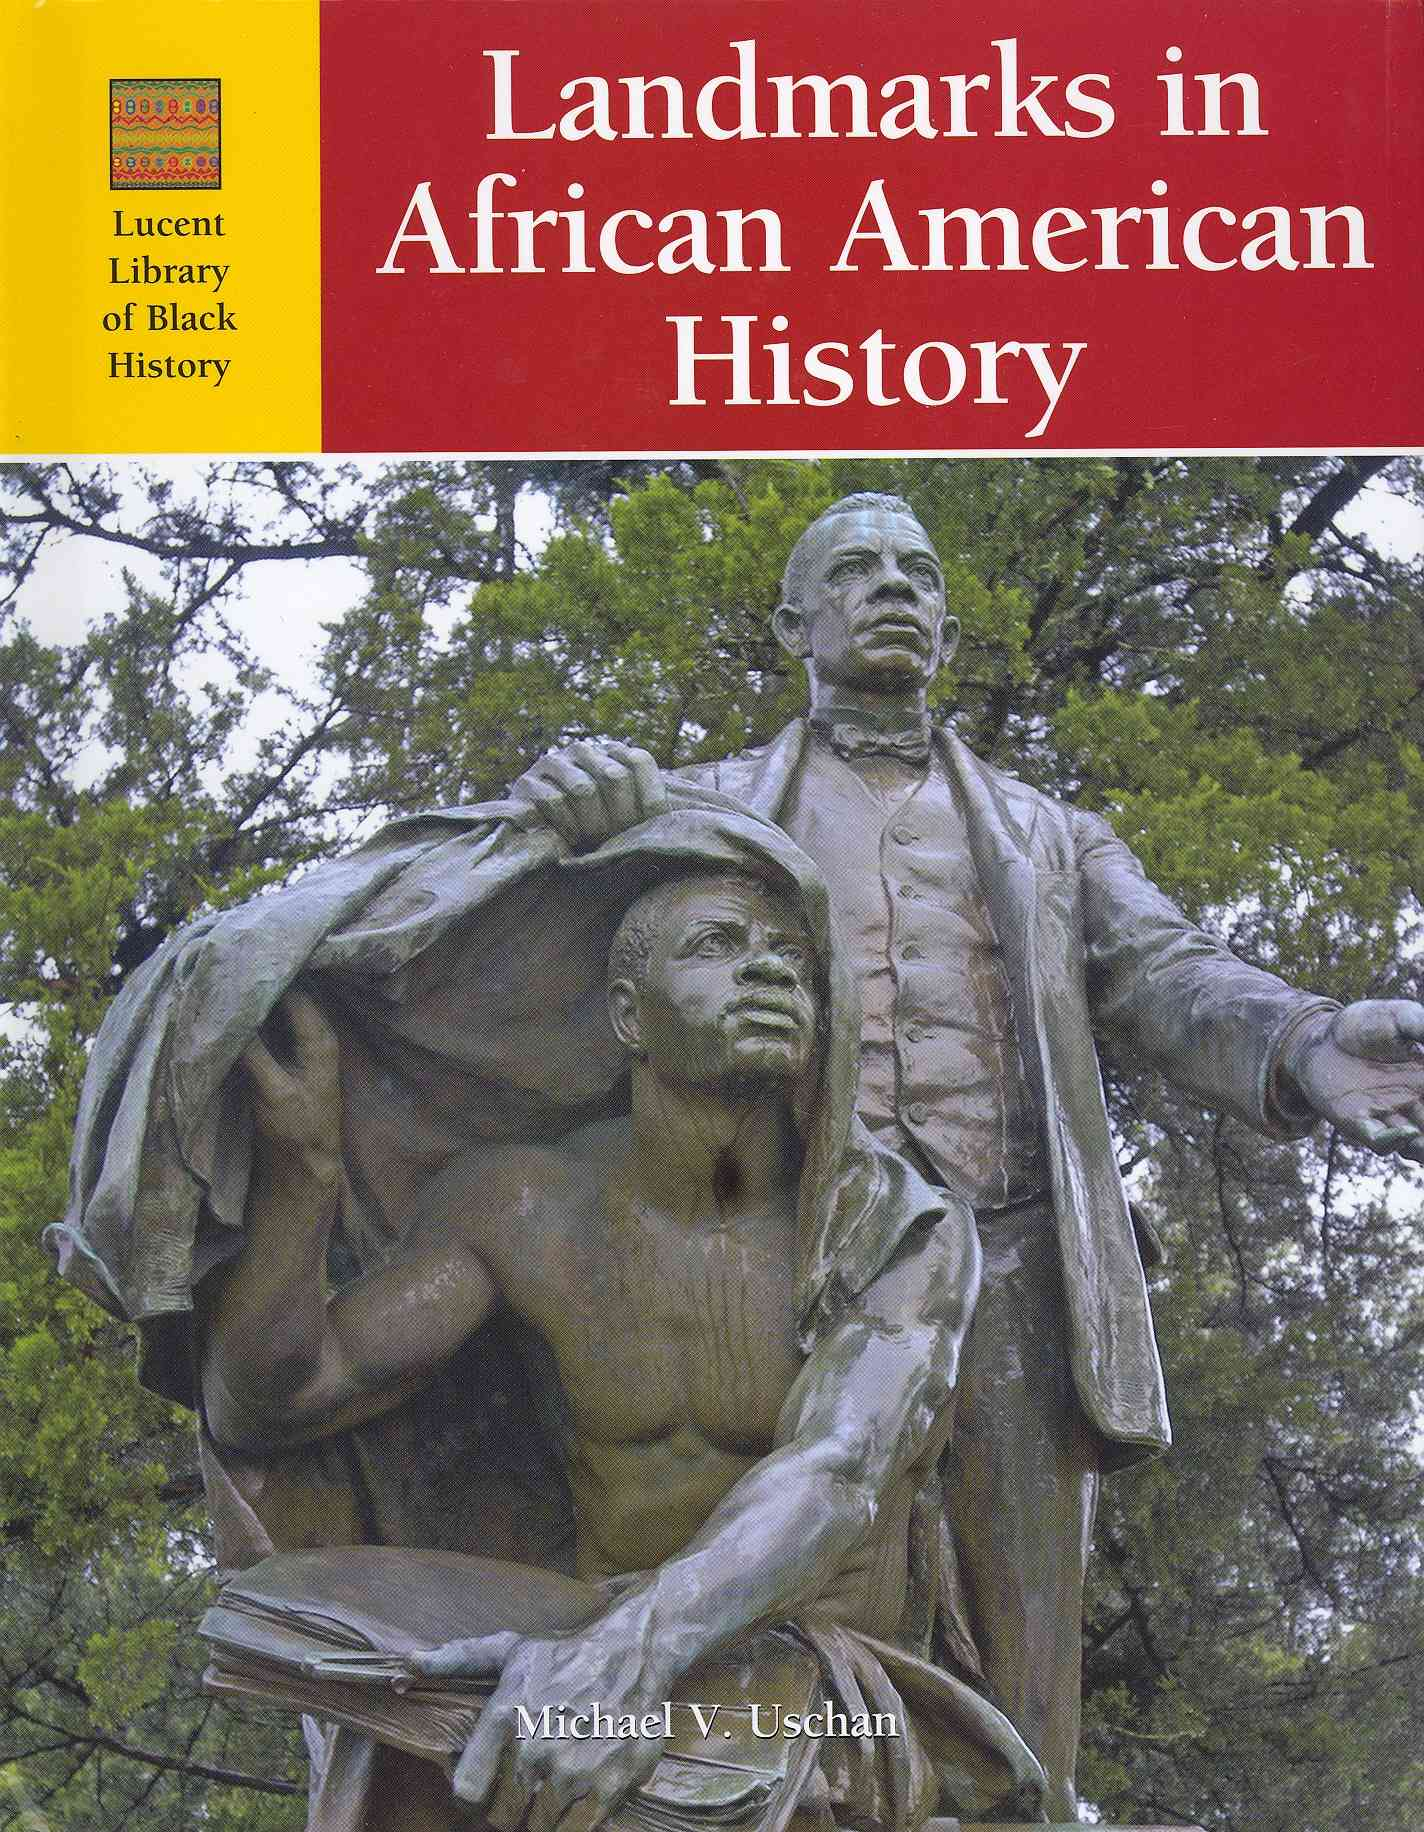 Landmarks in African American History By Uschan, Michael V. (EDT)